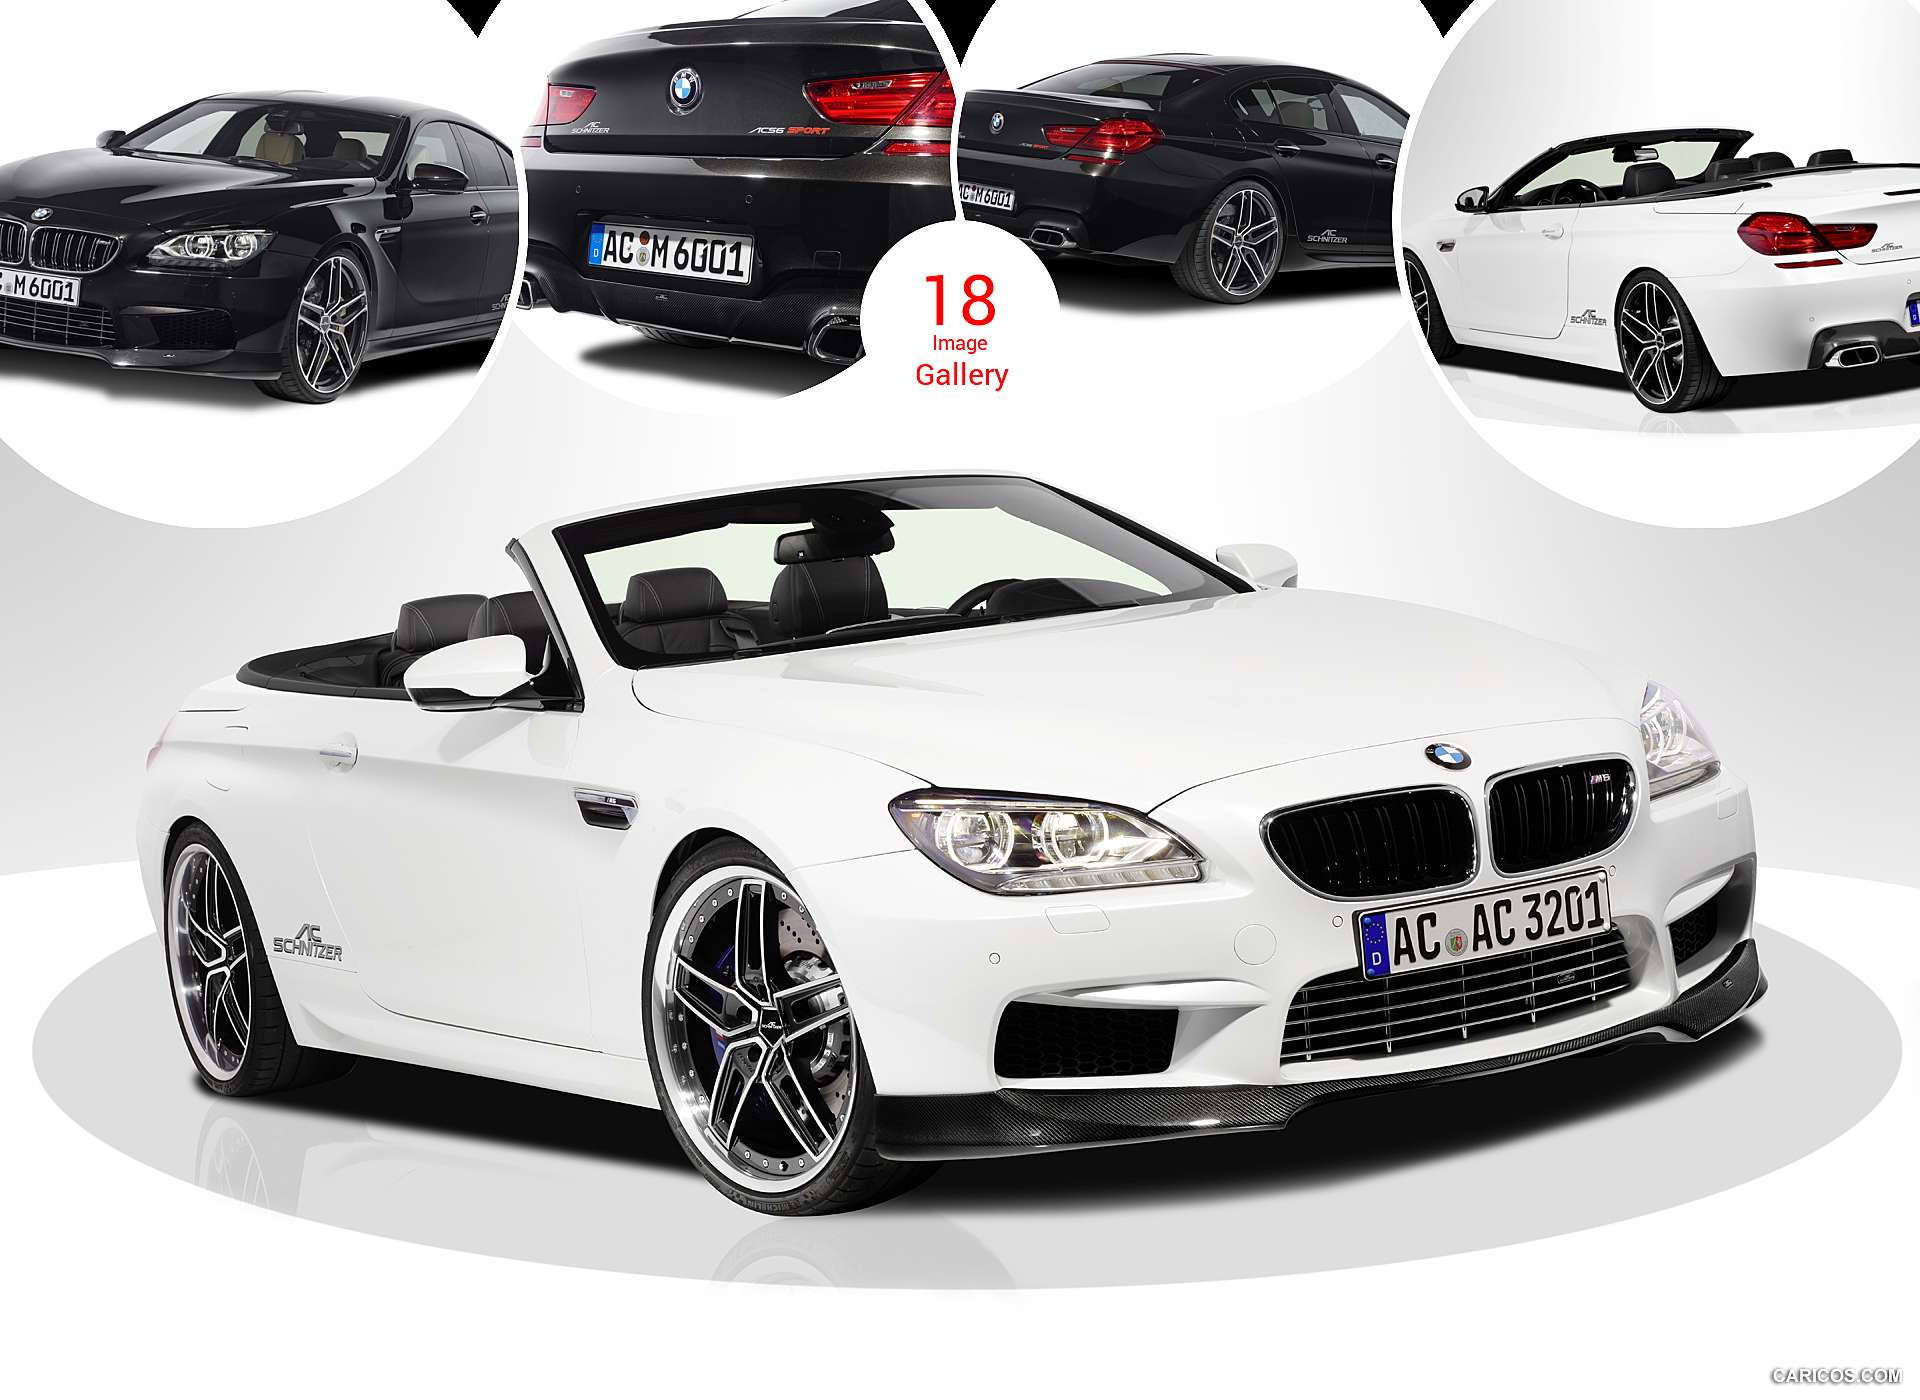 2013 AC Schnitzer ACS6 Sport based on BMW M6